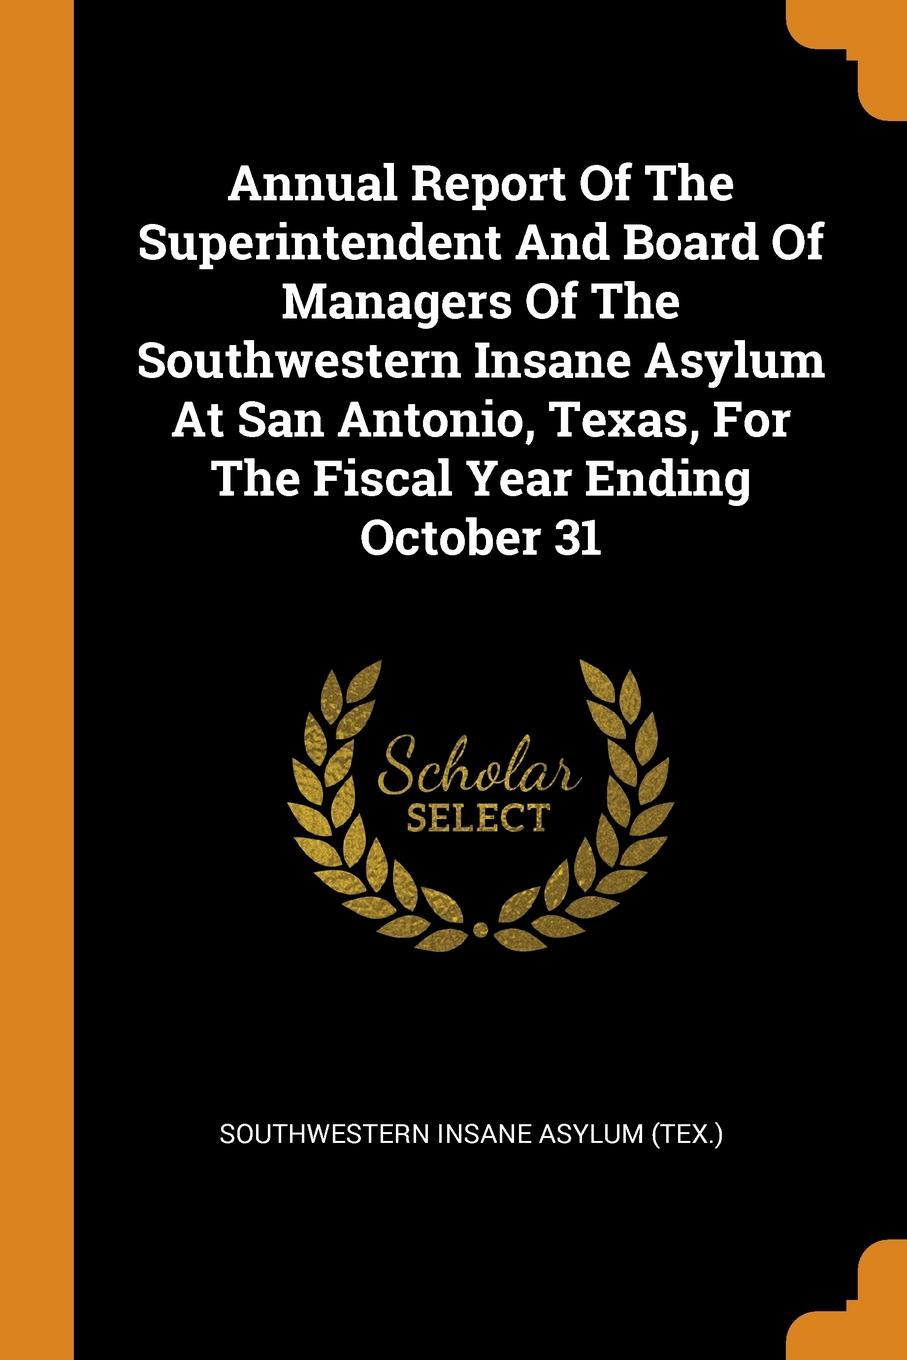 Annual Report Of The Superintendent And Board Of Managers Of The Southwestern Insane Asylum At San Antonio, Texas, For The Fiscal Year Ending October 31